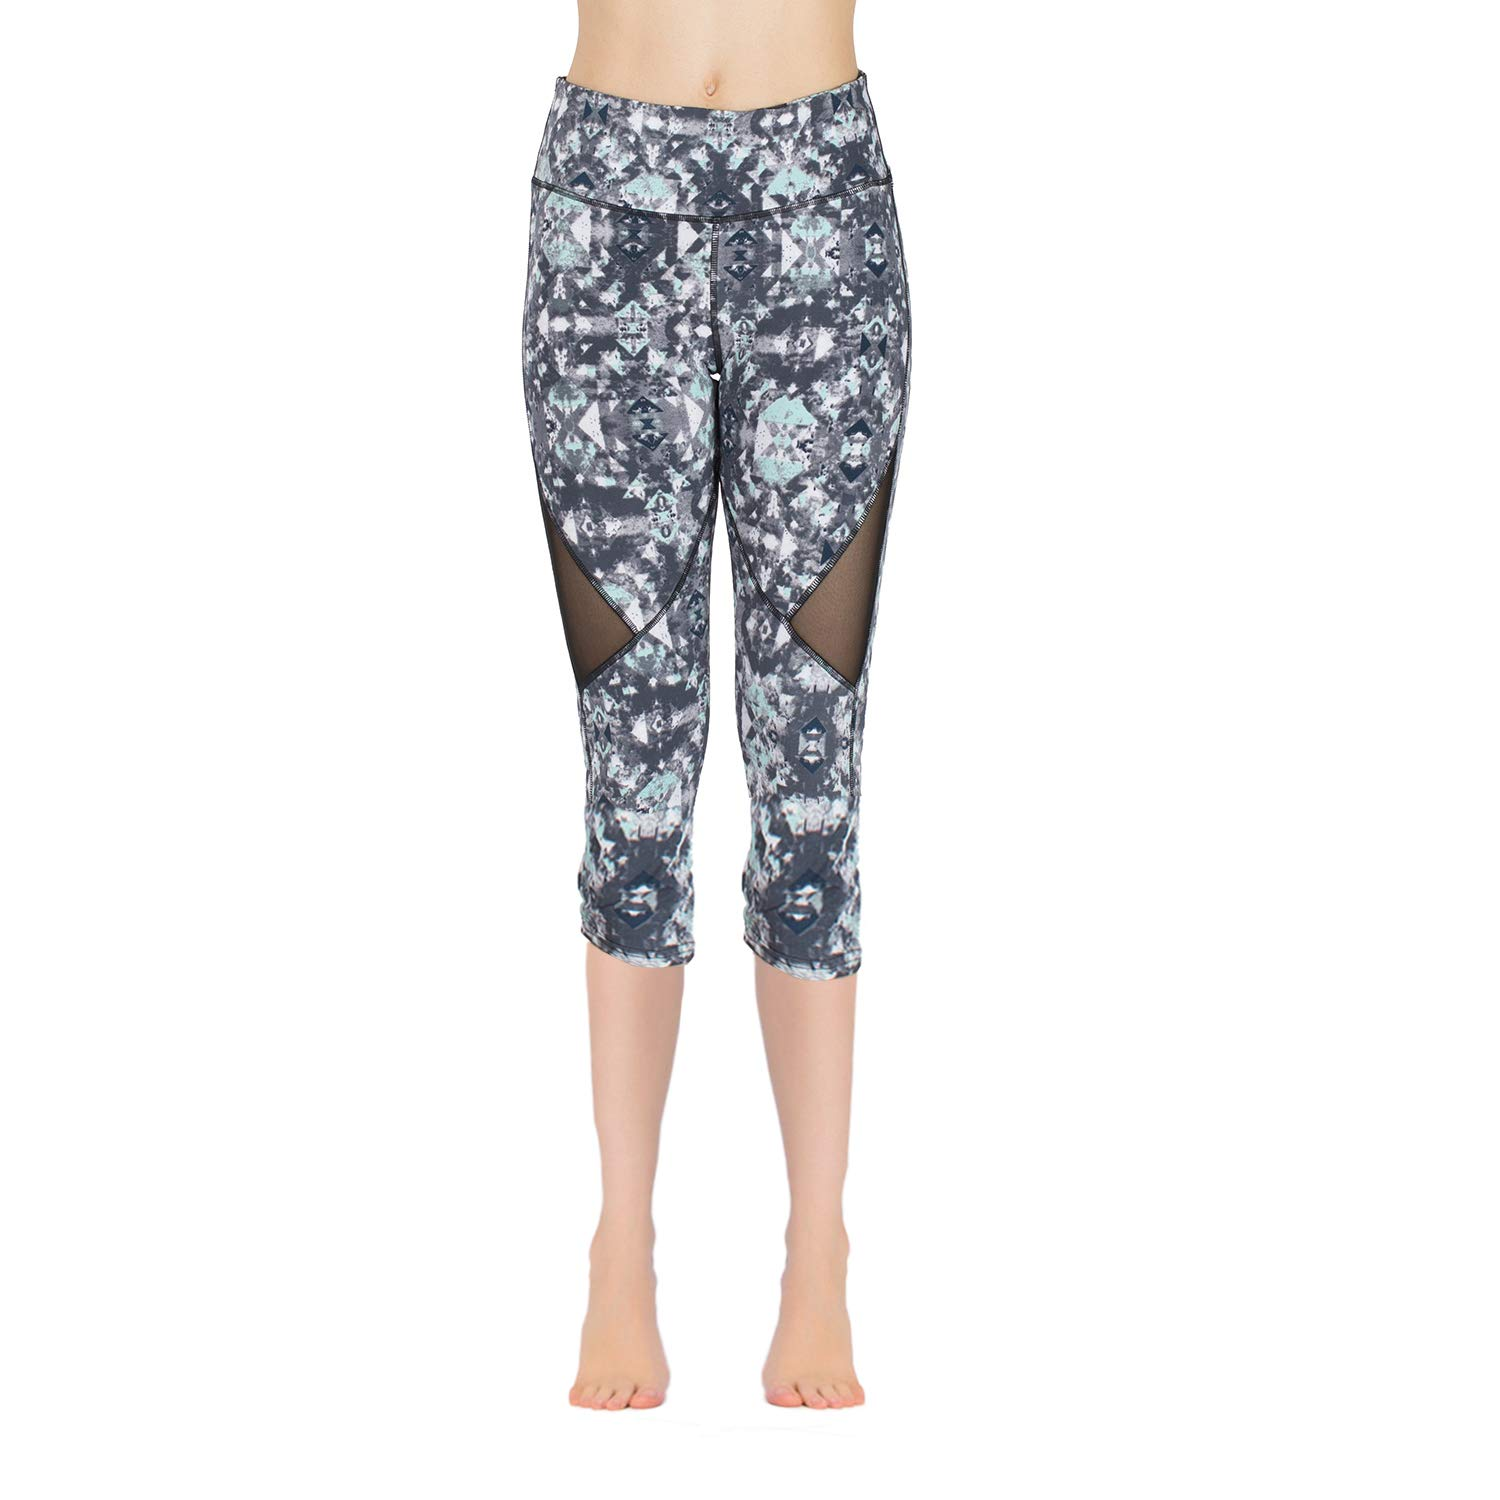 Smg10 bluee Isports Women's Yoga Pants w Slimming Tummy Control (High Waisted)